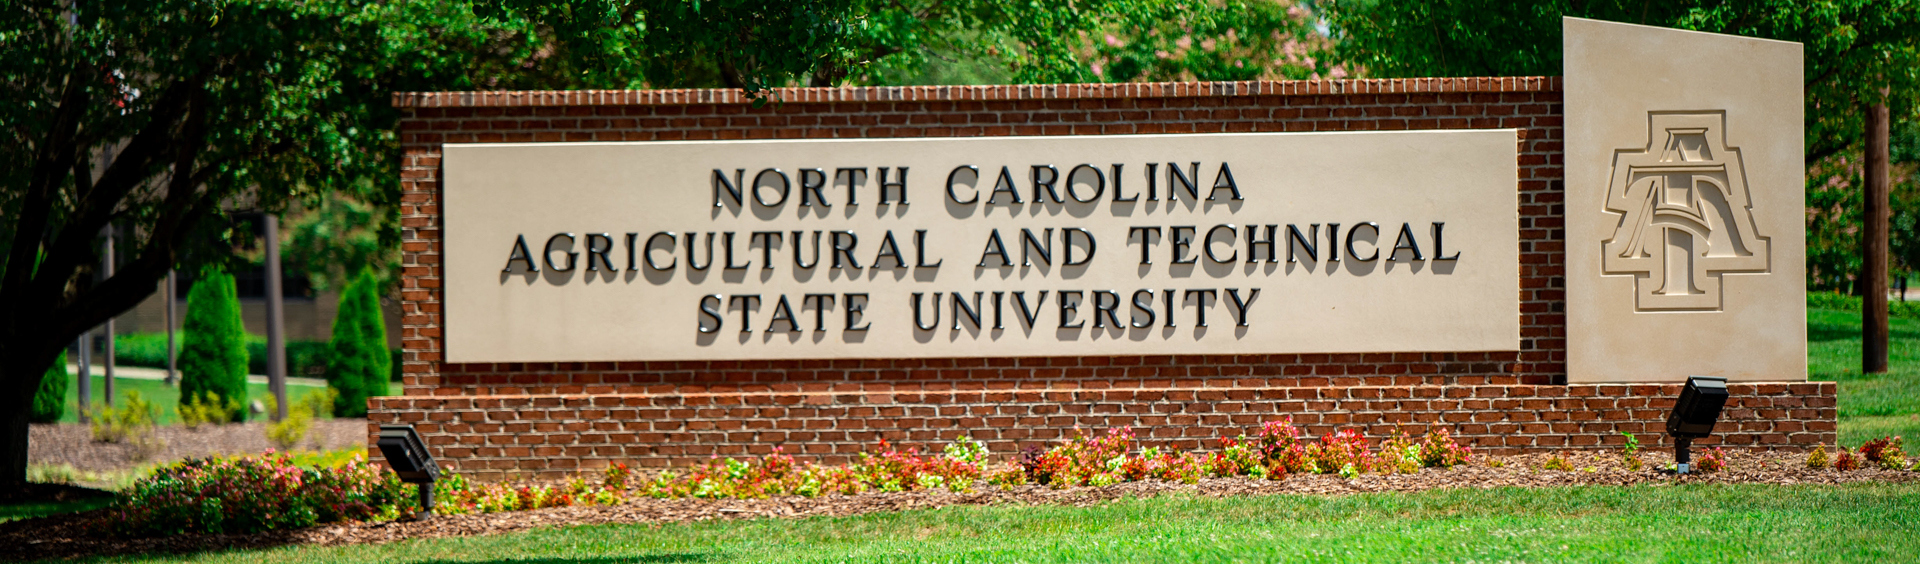 Ncat Christmas Break 2020 N.C. A&T Releases Academic Calendar for Fall 2020 With Significant